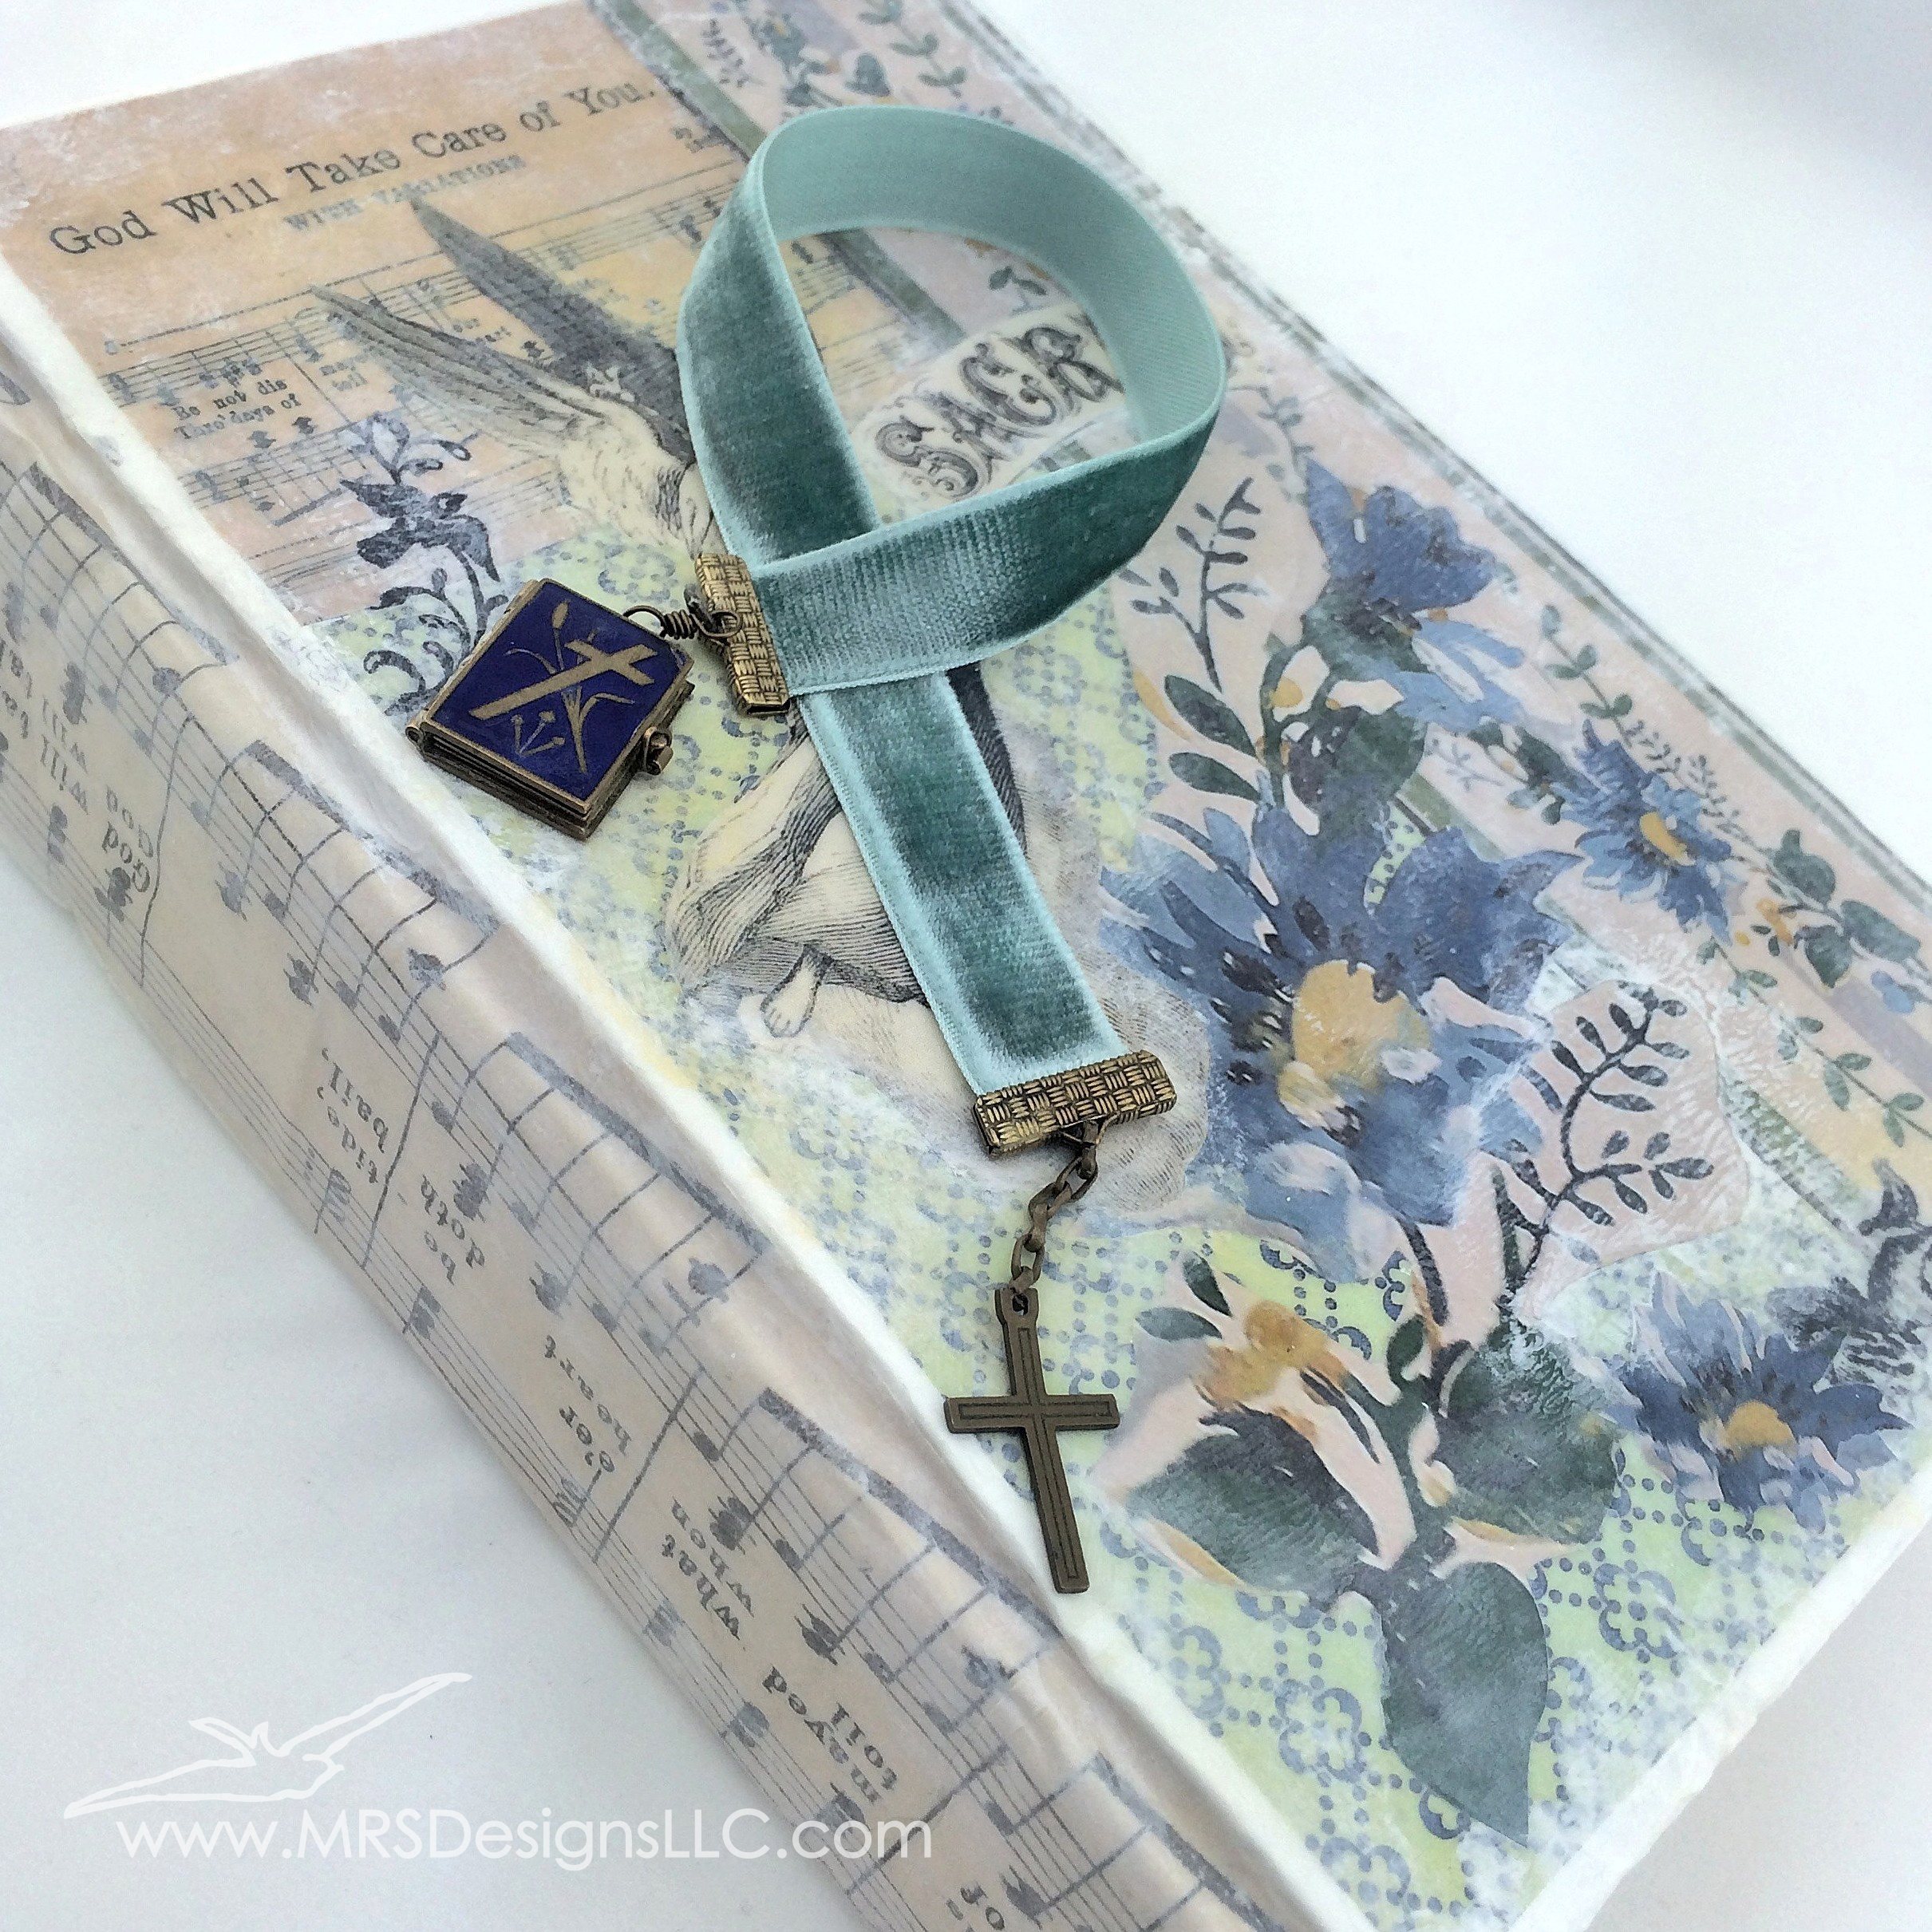 MRS Designs Blog - Paint and Decoupage an Old Book Cover Finished Product